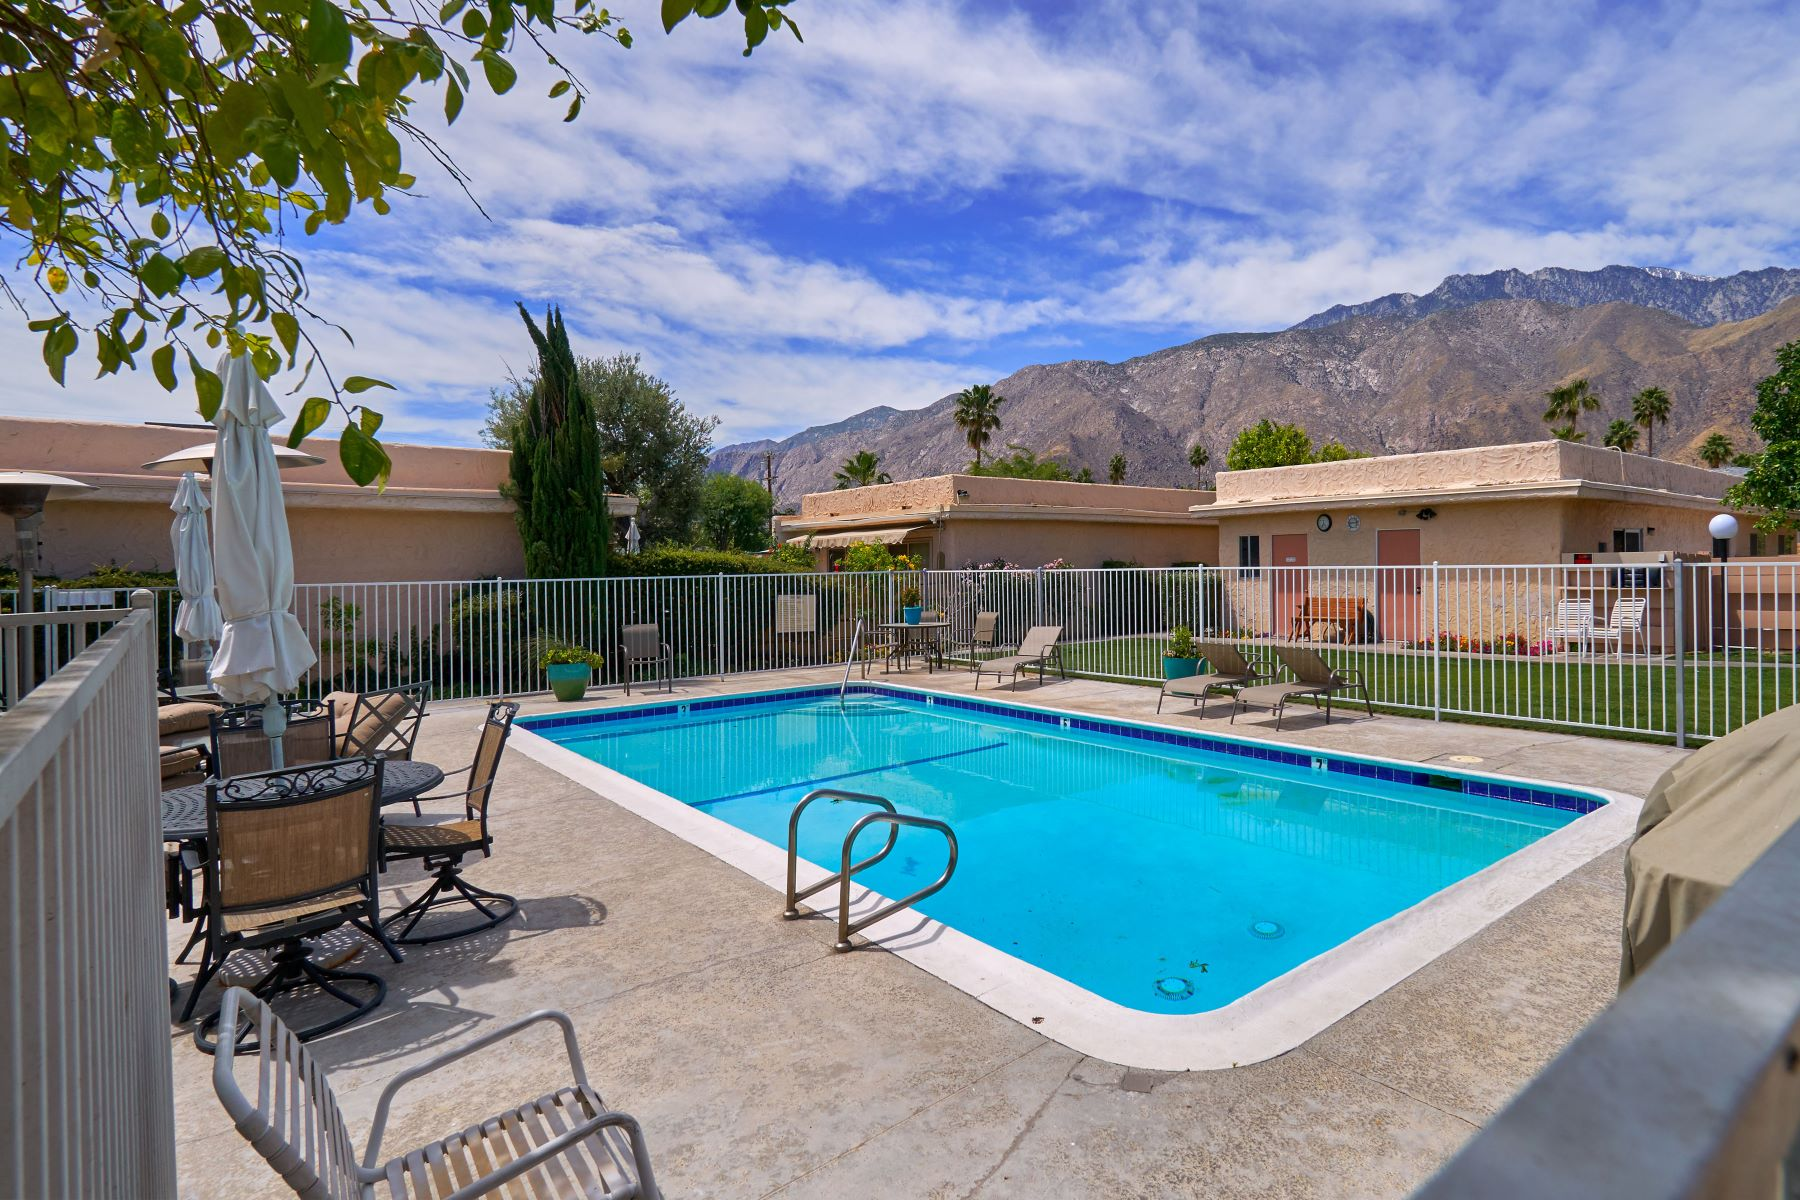 Condominium for Sale at 821 E Vista Chino 821 E Vista Chino #1 North Palm Springs, California, 92260 United States